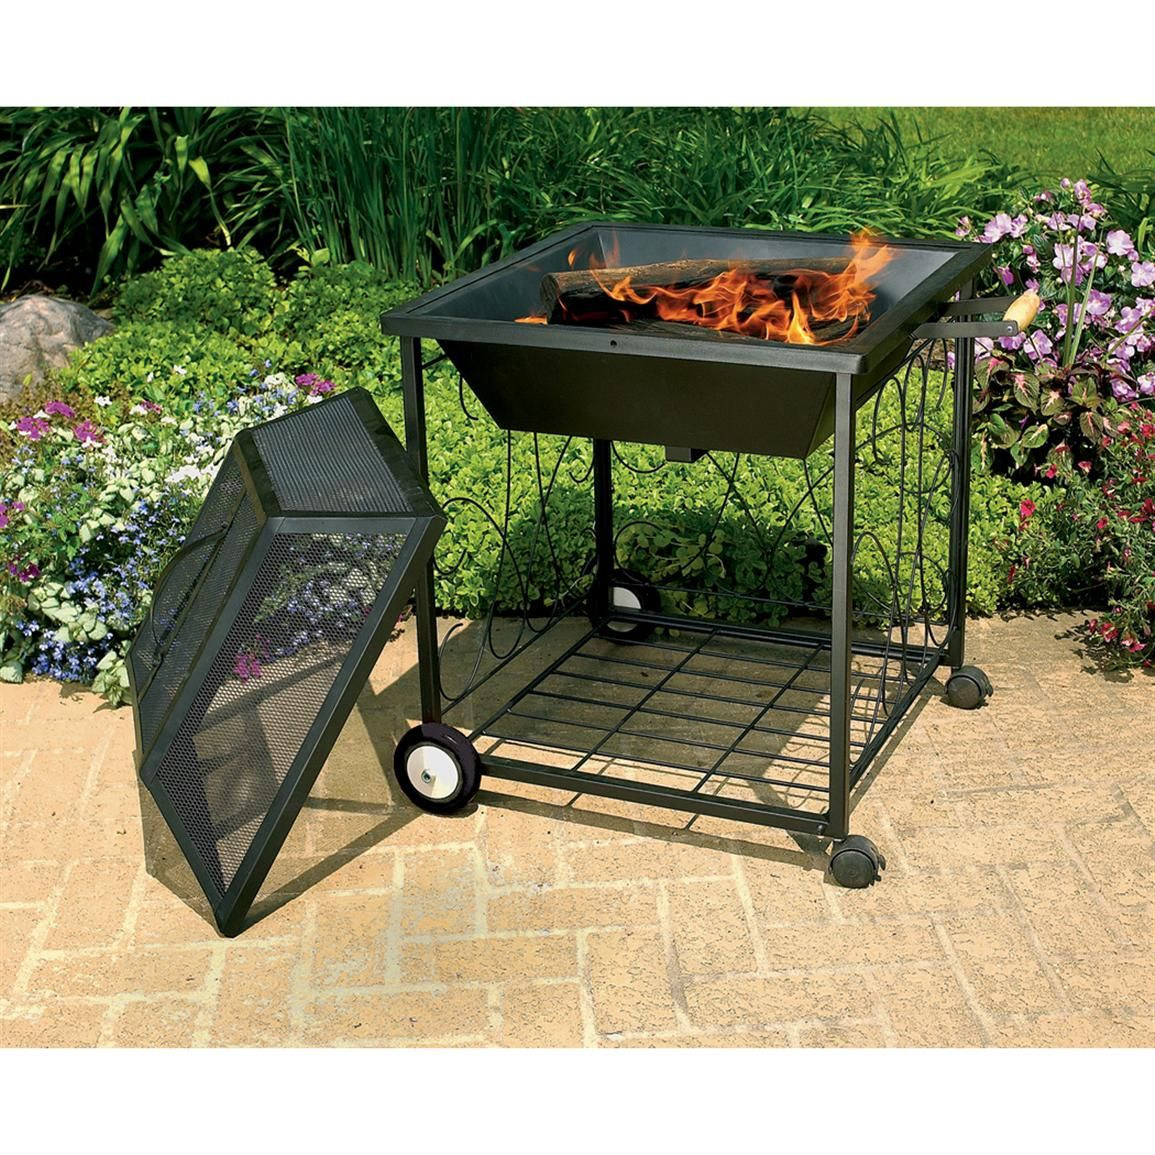 Portable Outdoor Fire Pit With Wheels Fireplace Design Ideas Wood Fire Pit Portable Fire Pits Wheel Fire Pit